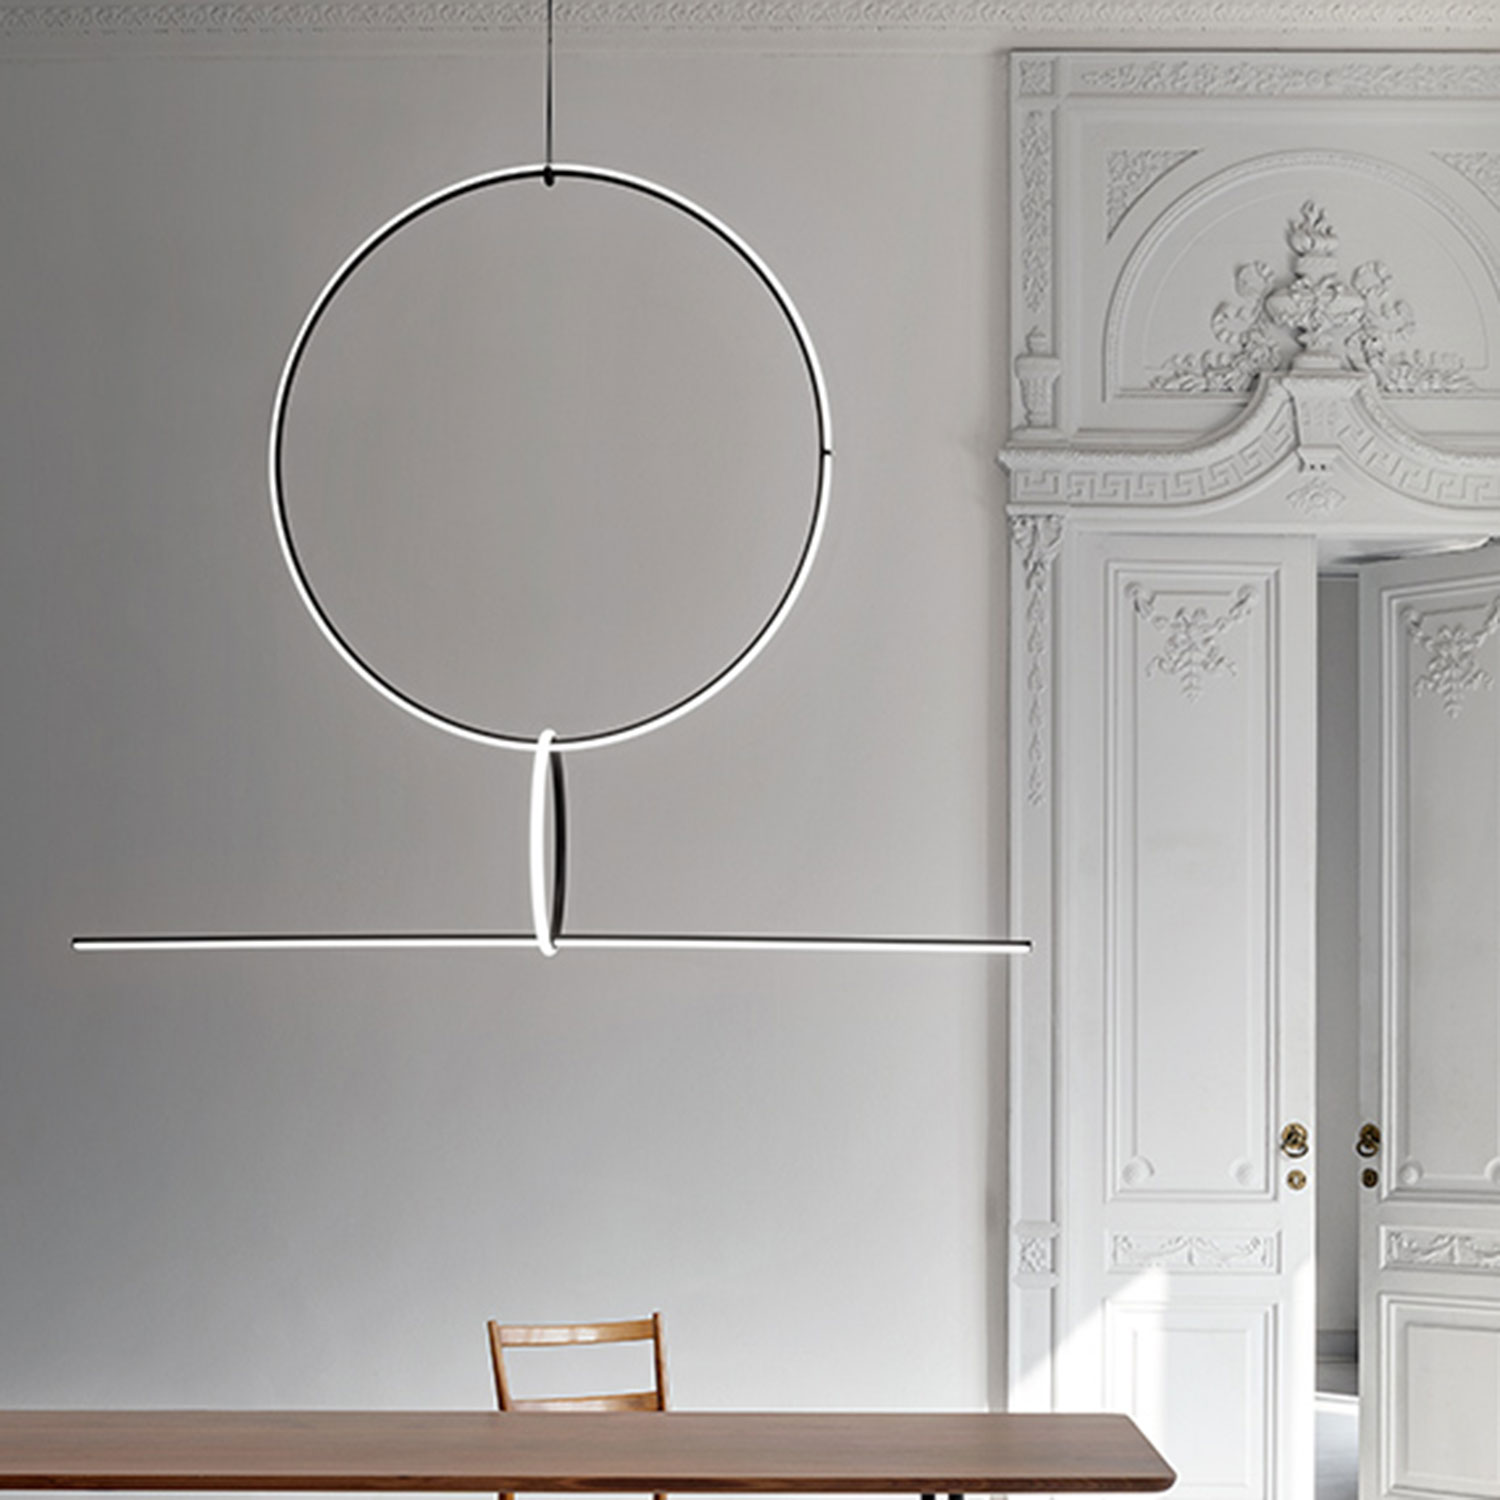 arrangement-light fixture flos pendant light - mannheim